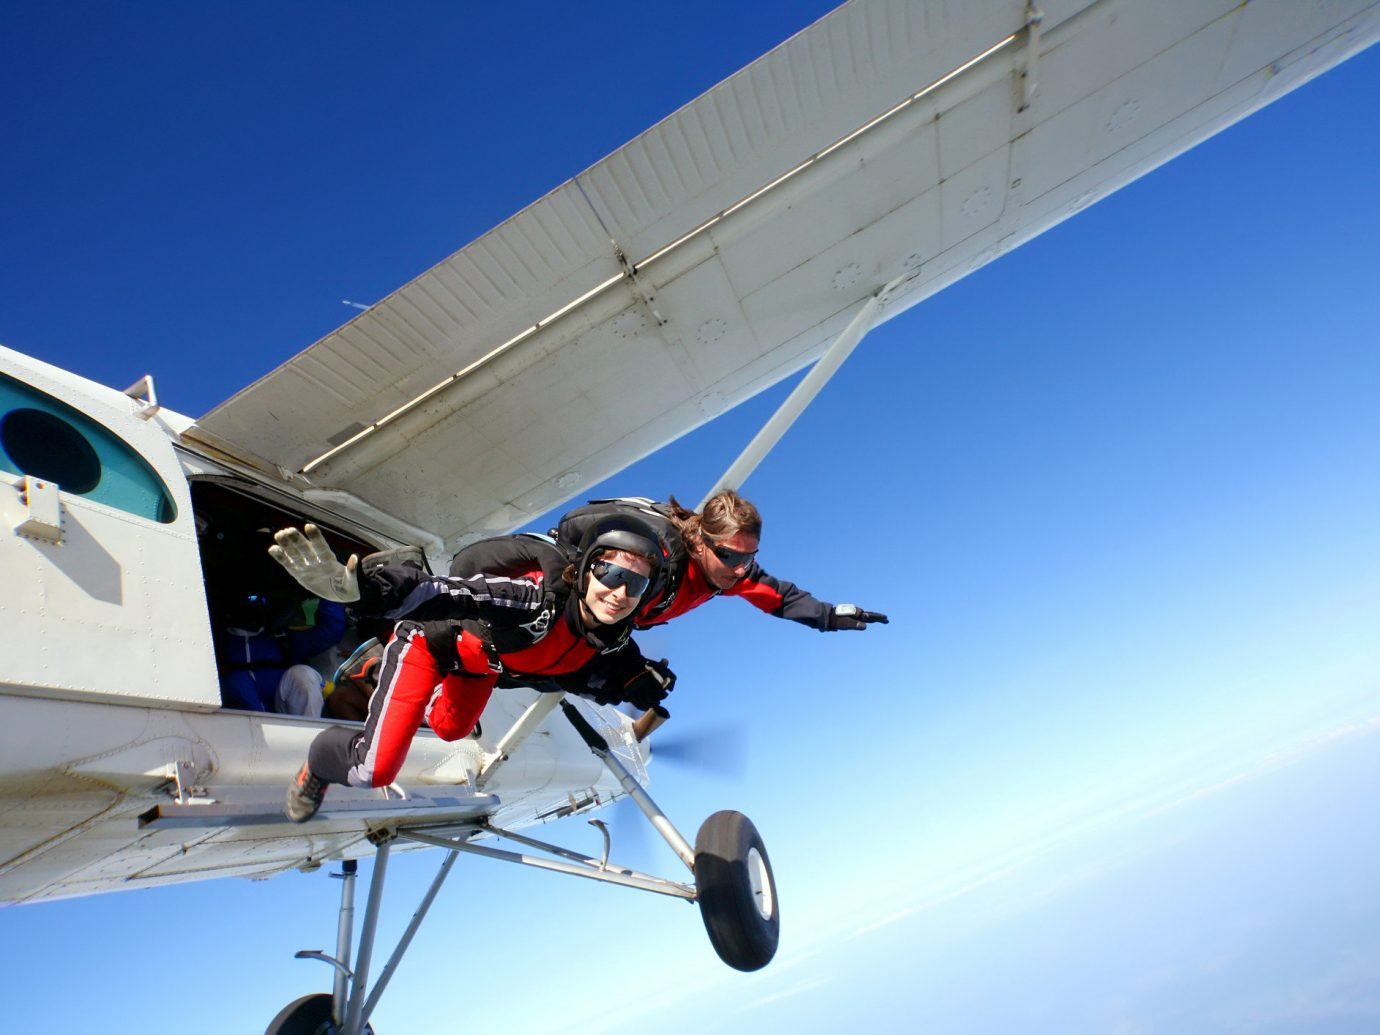 Offbeat sky plane outdoor air sports skiing air travel airplane flight parachuting ultralight aviation aircraft aviation windsports atmosphere of earth sports gliding jet aerospace engineering aerobatics extreme sport wing Adventure air force general aviation engine